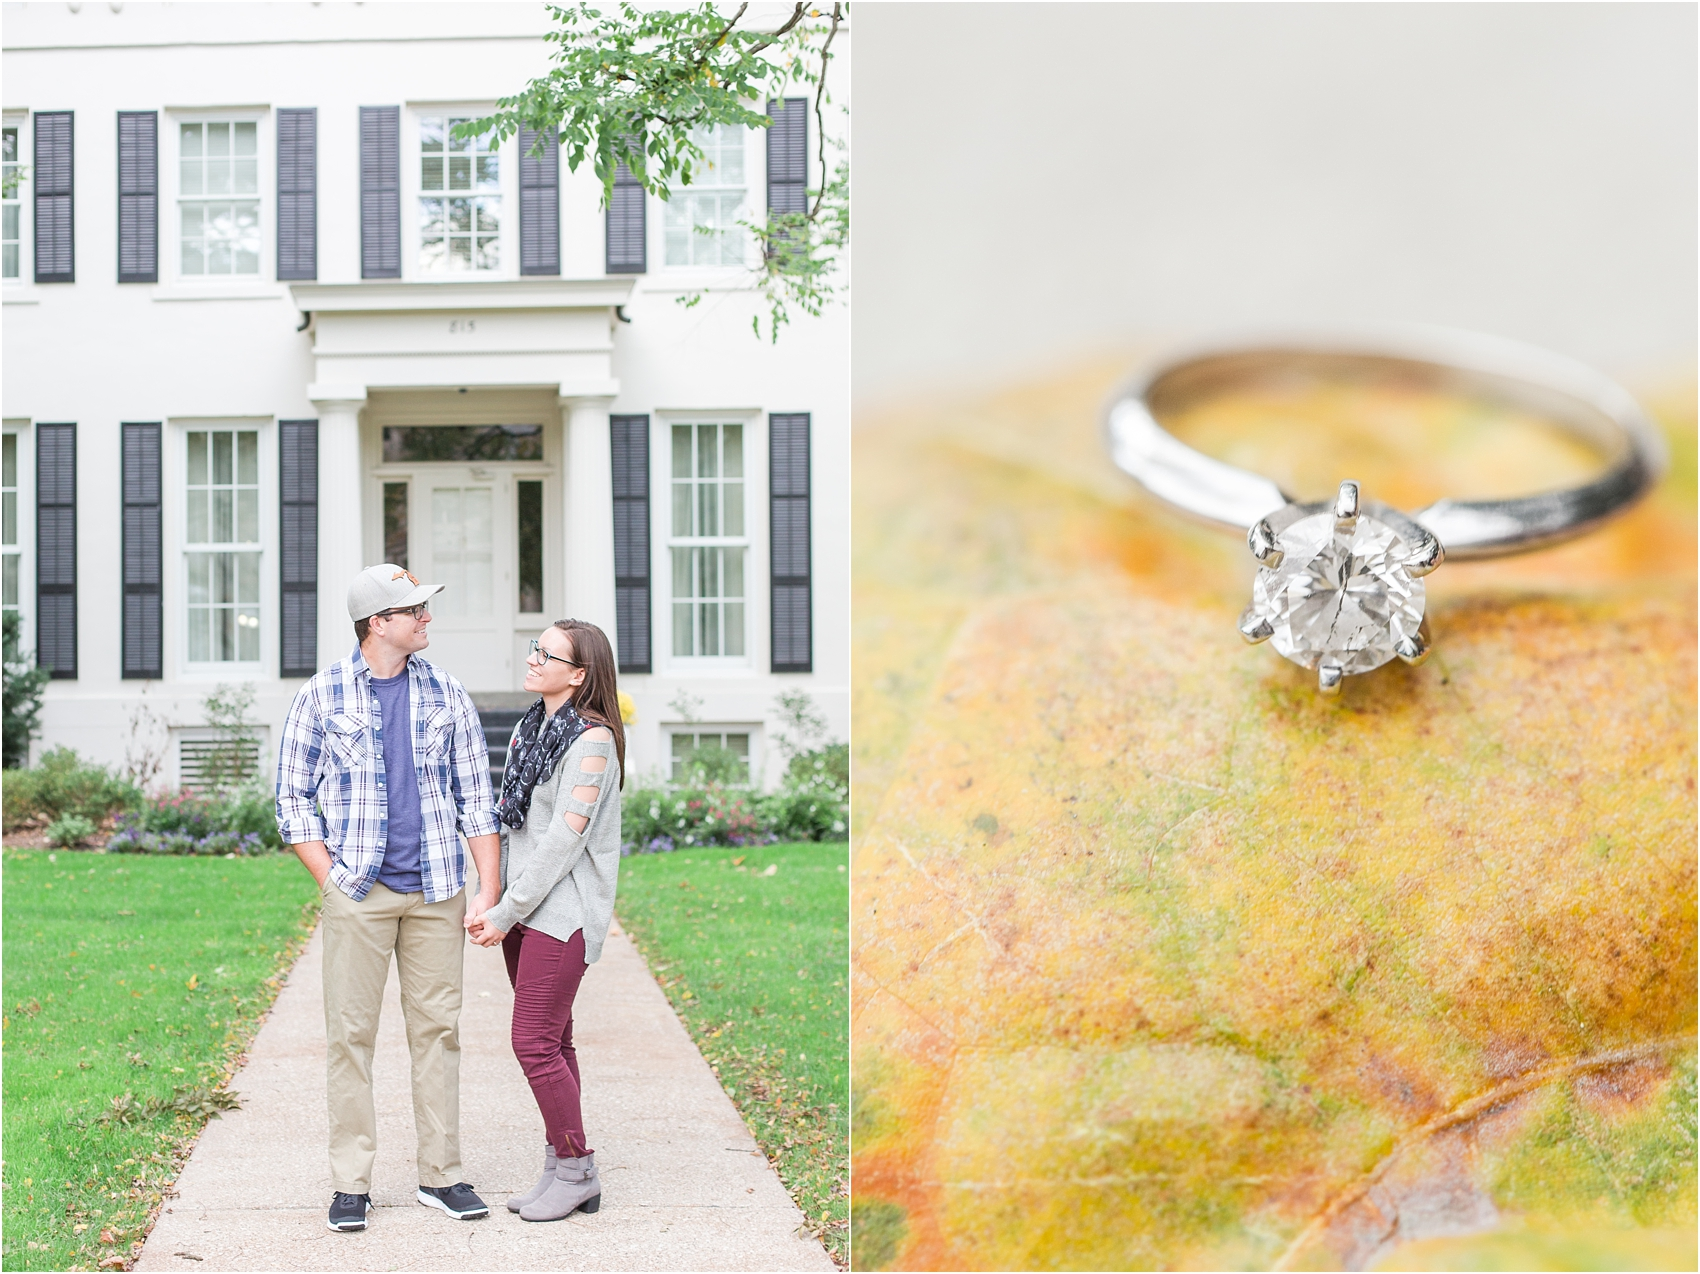 classic-fall-engagement-photos-at-the-university-of-michigan-in-ann-arbor-mi-by-courtney-carolyn-photography_0001.jpg